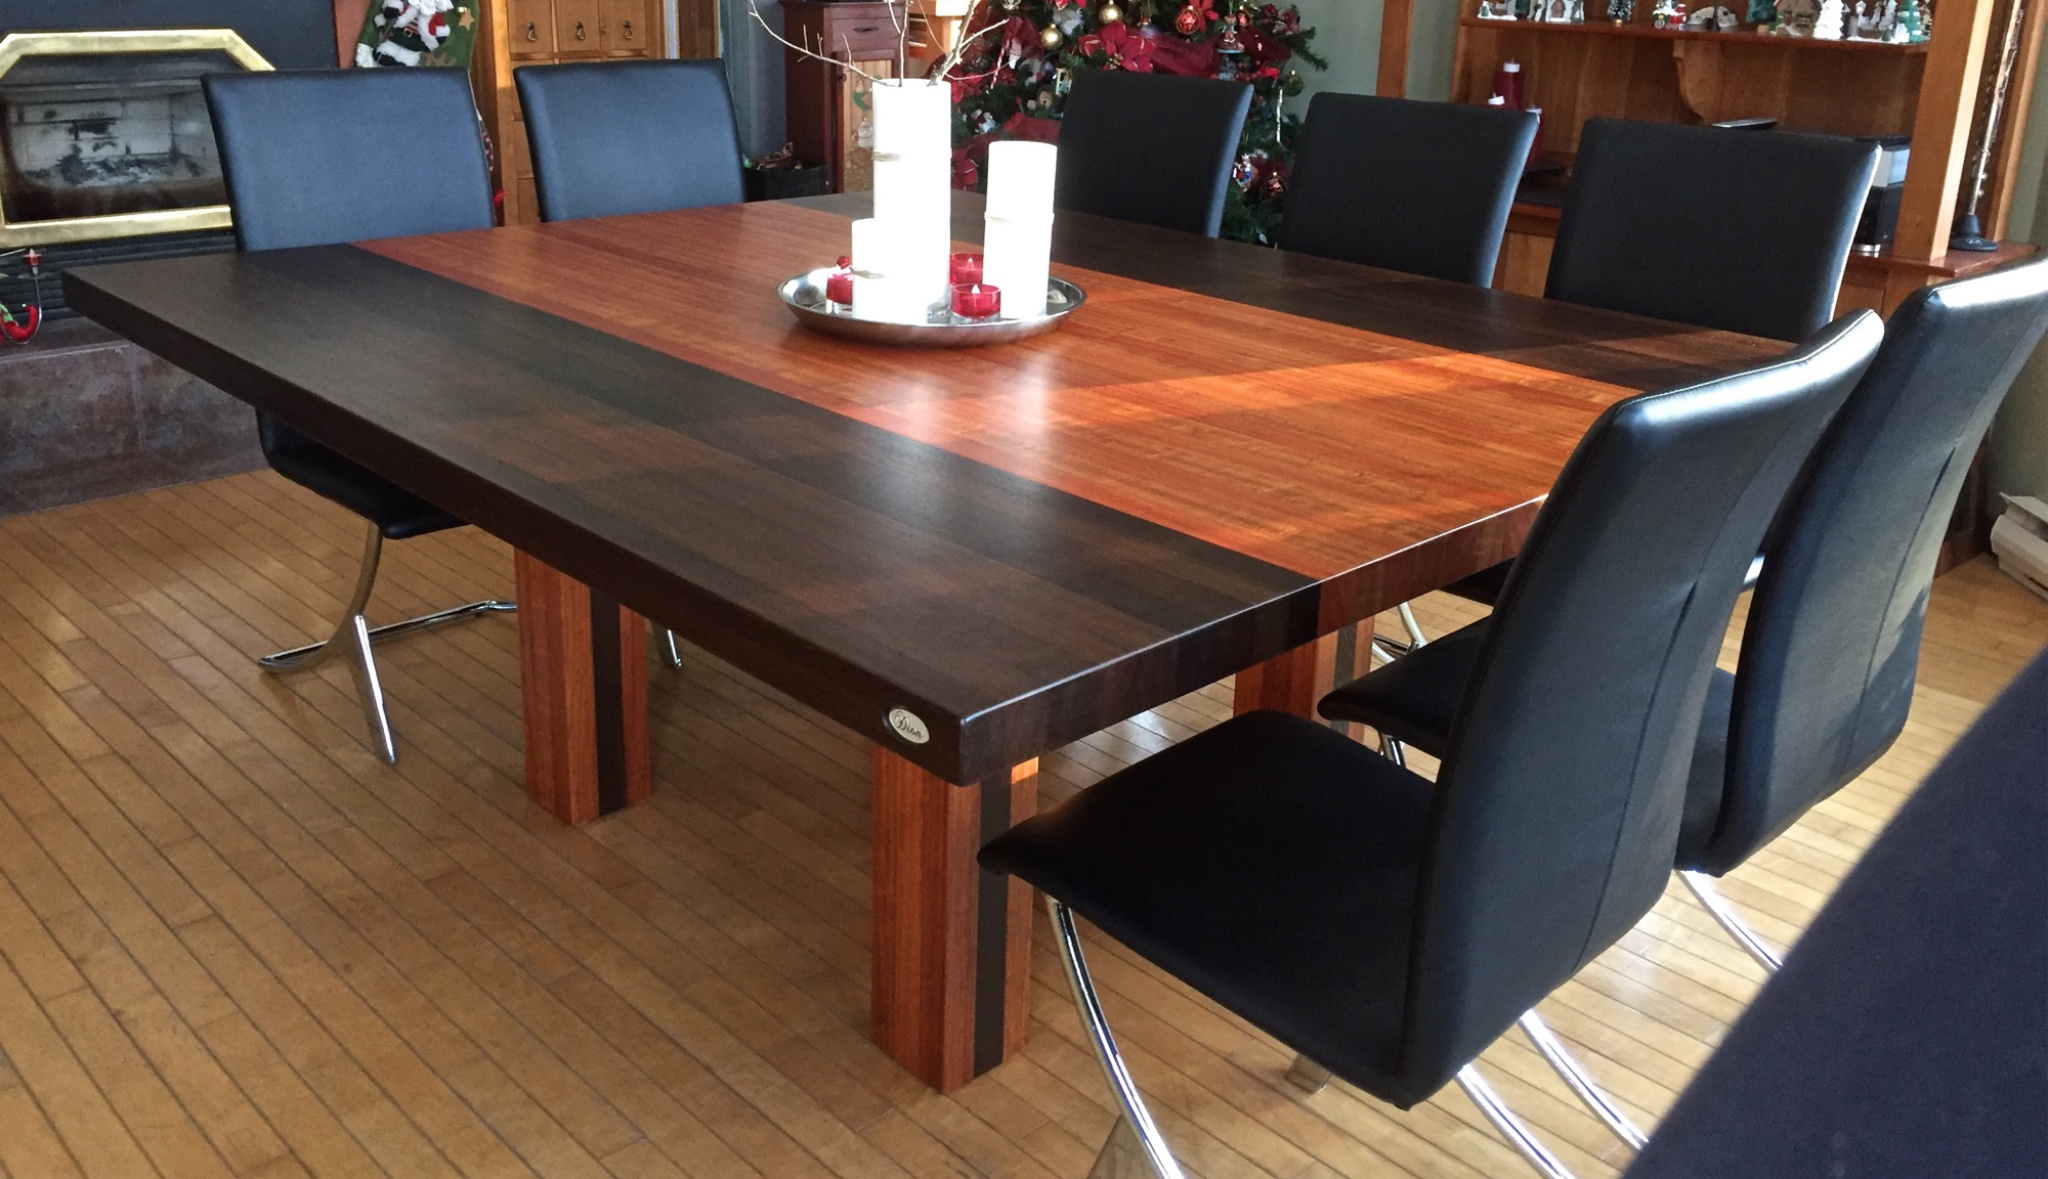 Superb table carree bois massif 13 tables en bois - Table rallonge bois massif ...